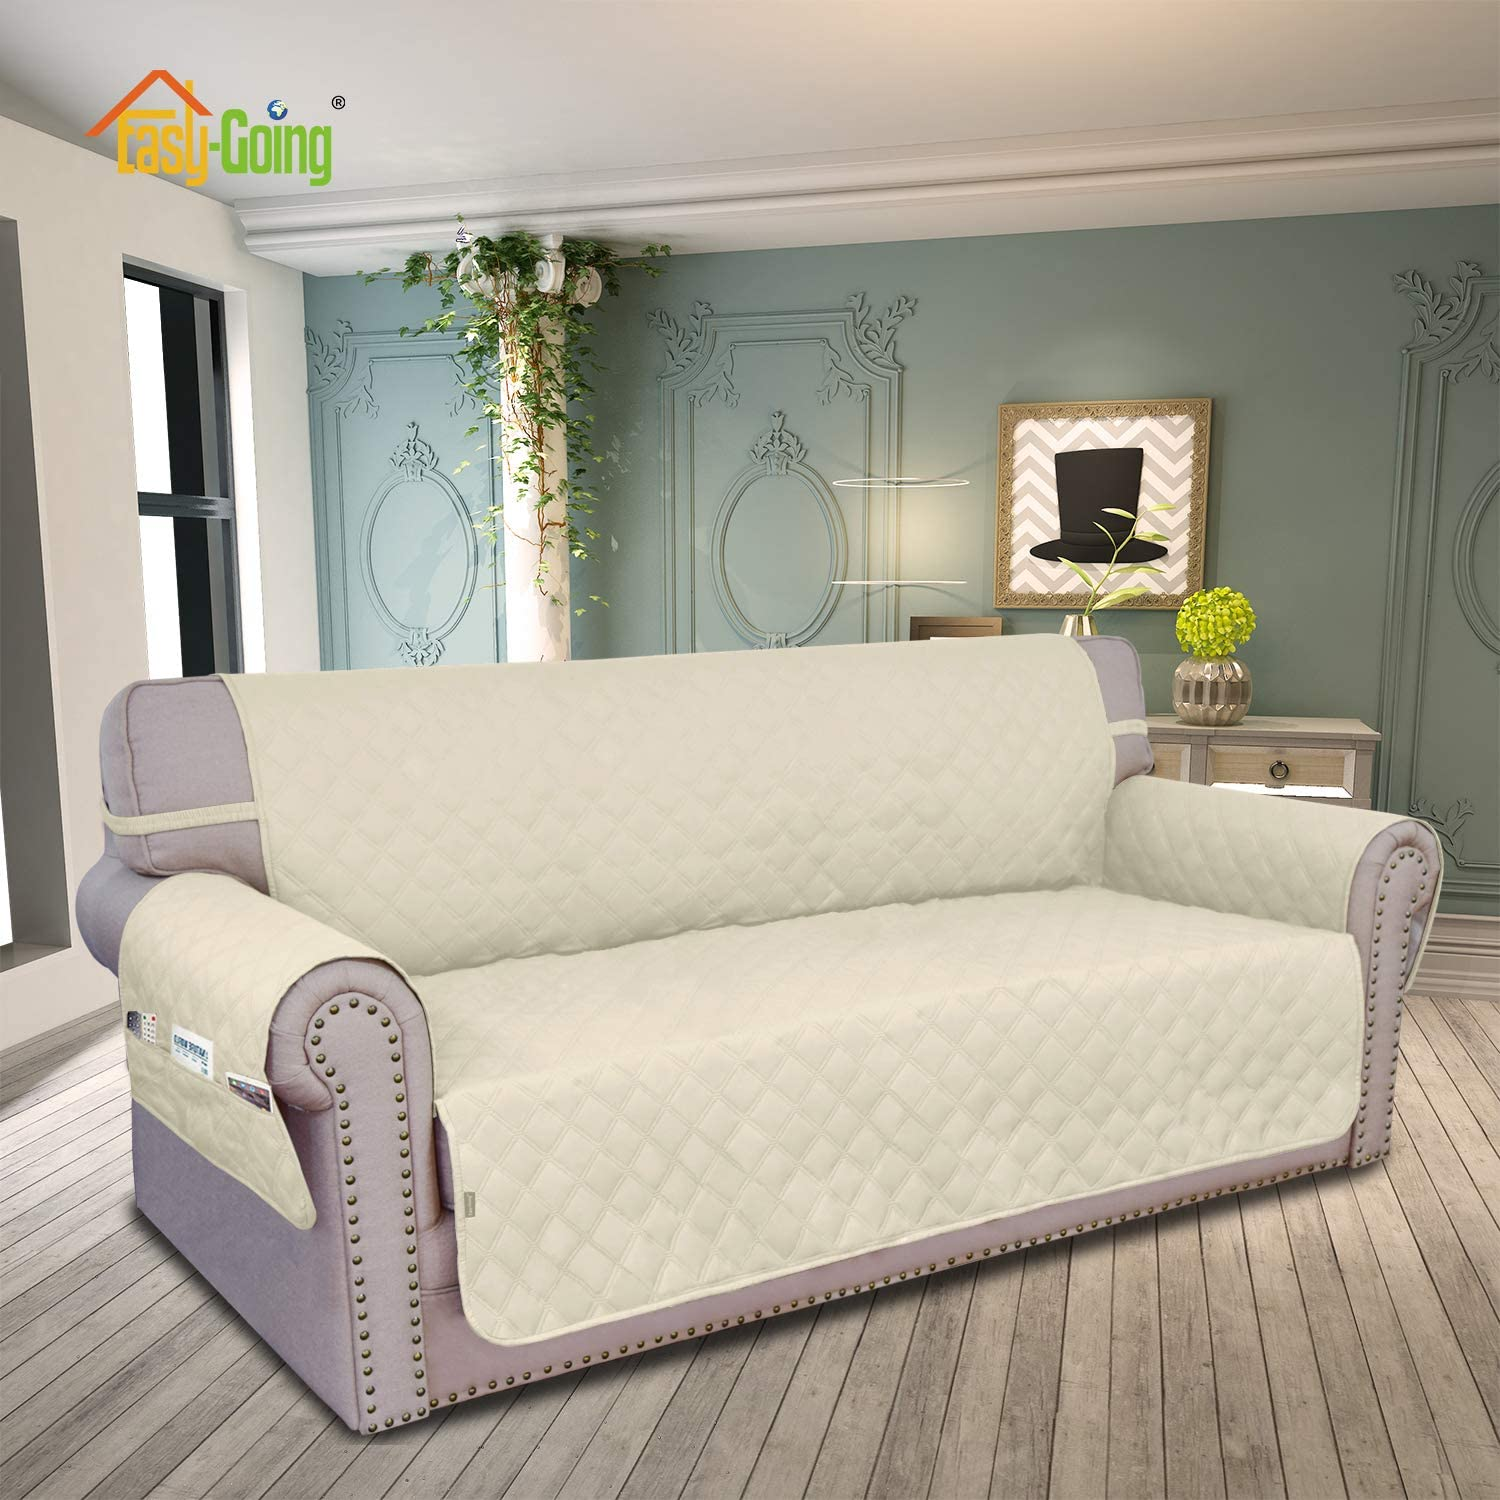 Easy-Going Sofa Slipcover Sofa Cover Waterproof Couch Cover Furniture Protector Cover Pets Covers Whole Fabric No Stitching Non-Slip Fabric Pets Kids Children Dog Cat (Large, Ivory): Kitchen & Dining